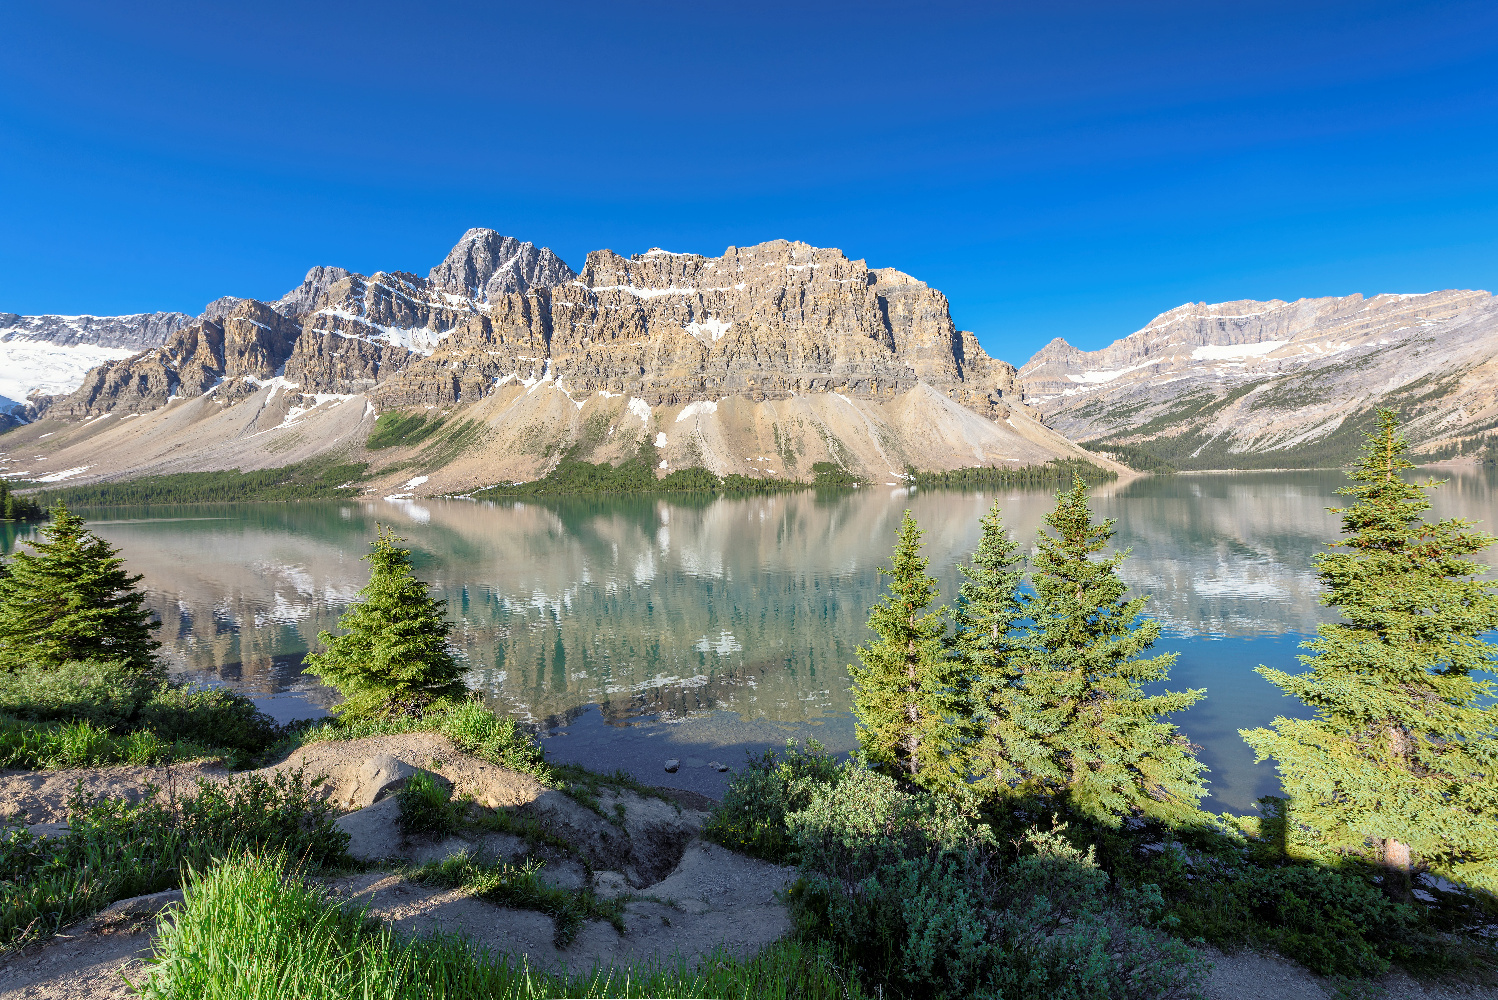 Alberta Banff Bow See am Icefields Parkway Rocky Mountains ©123RF